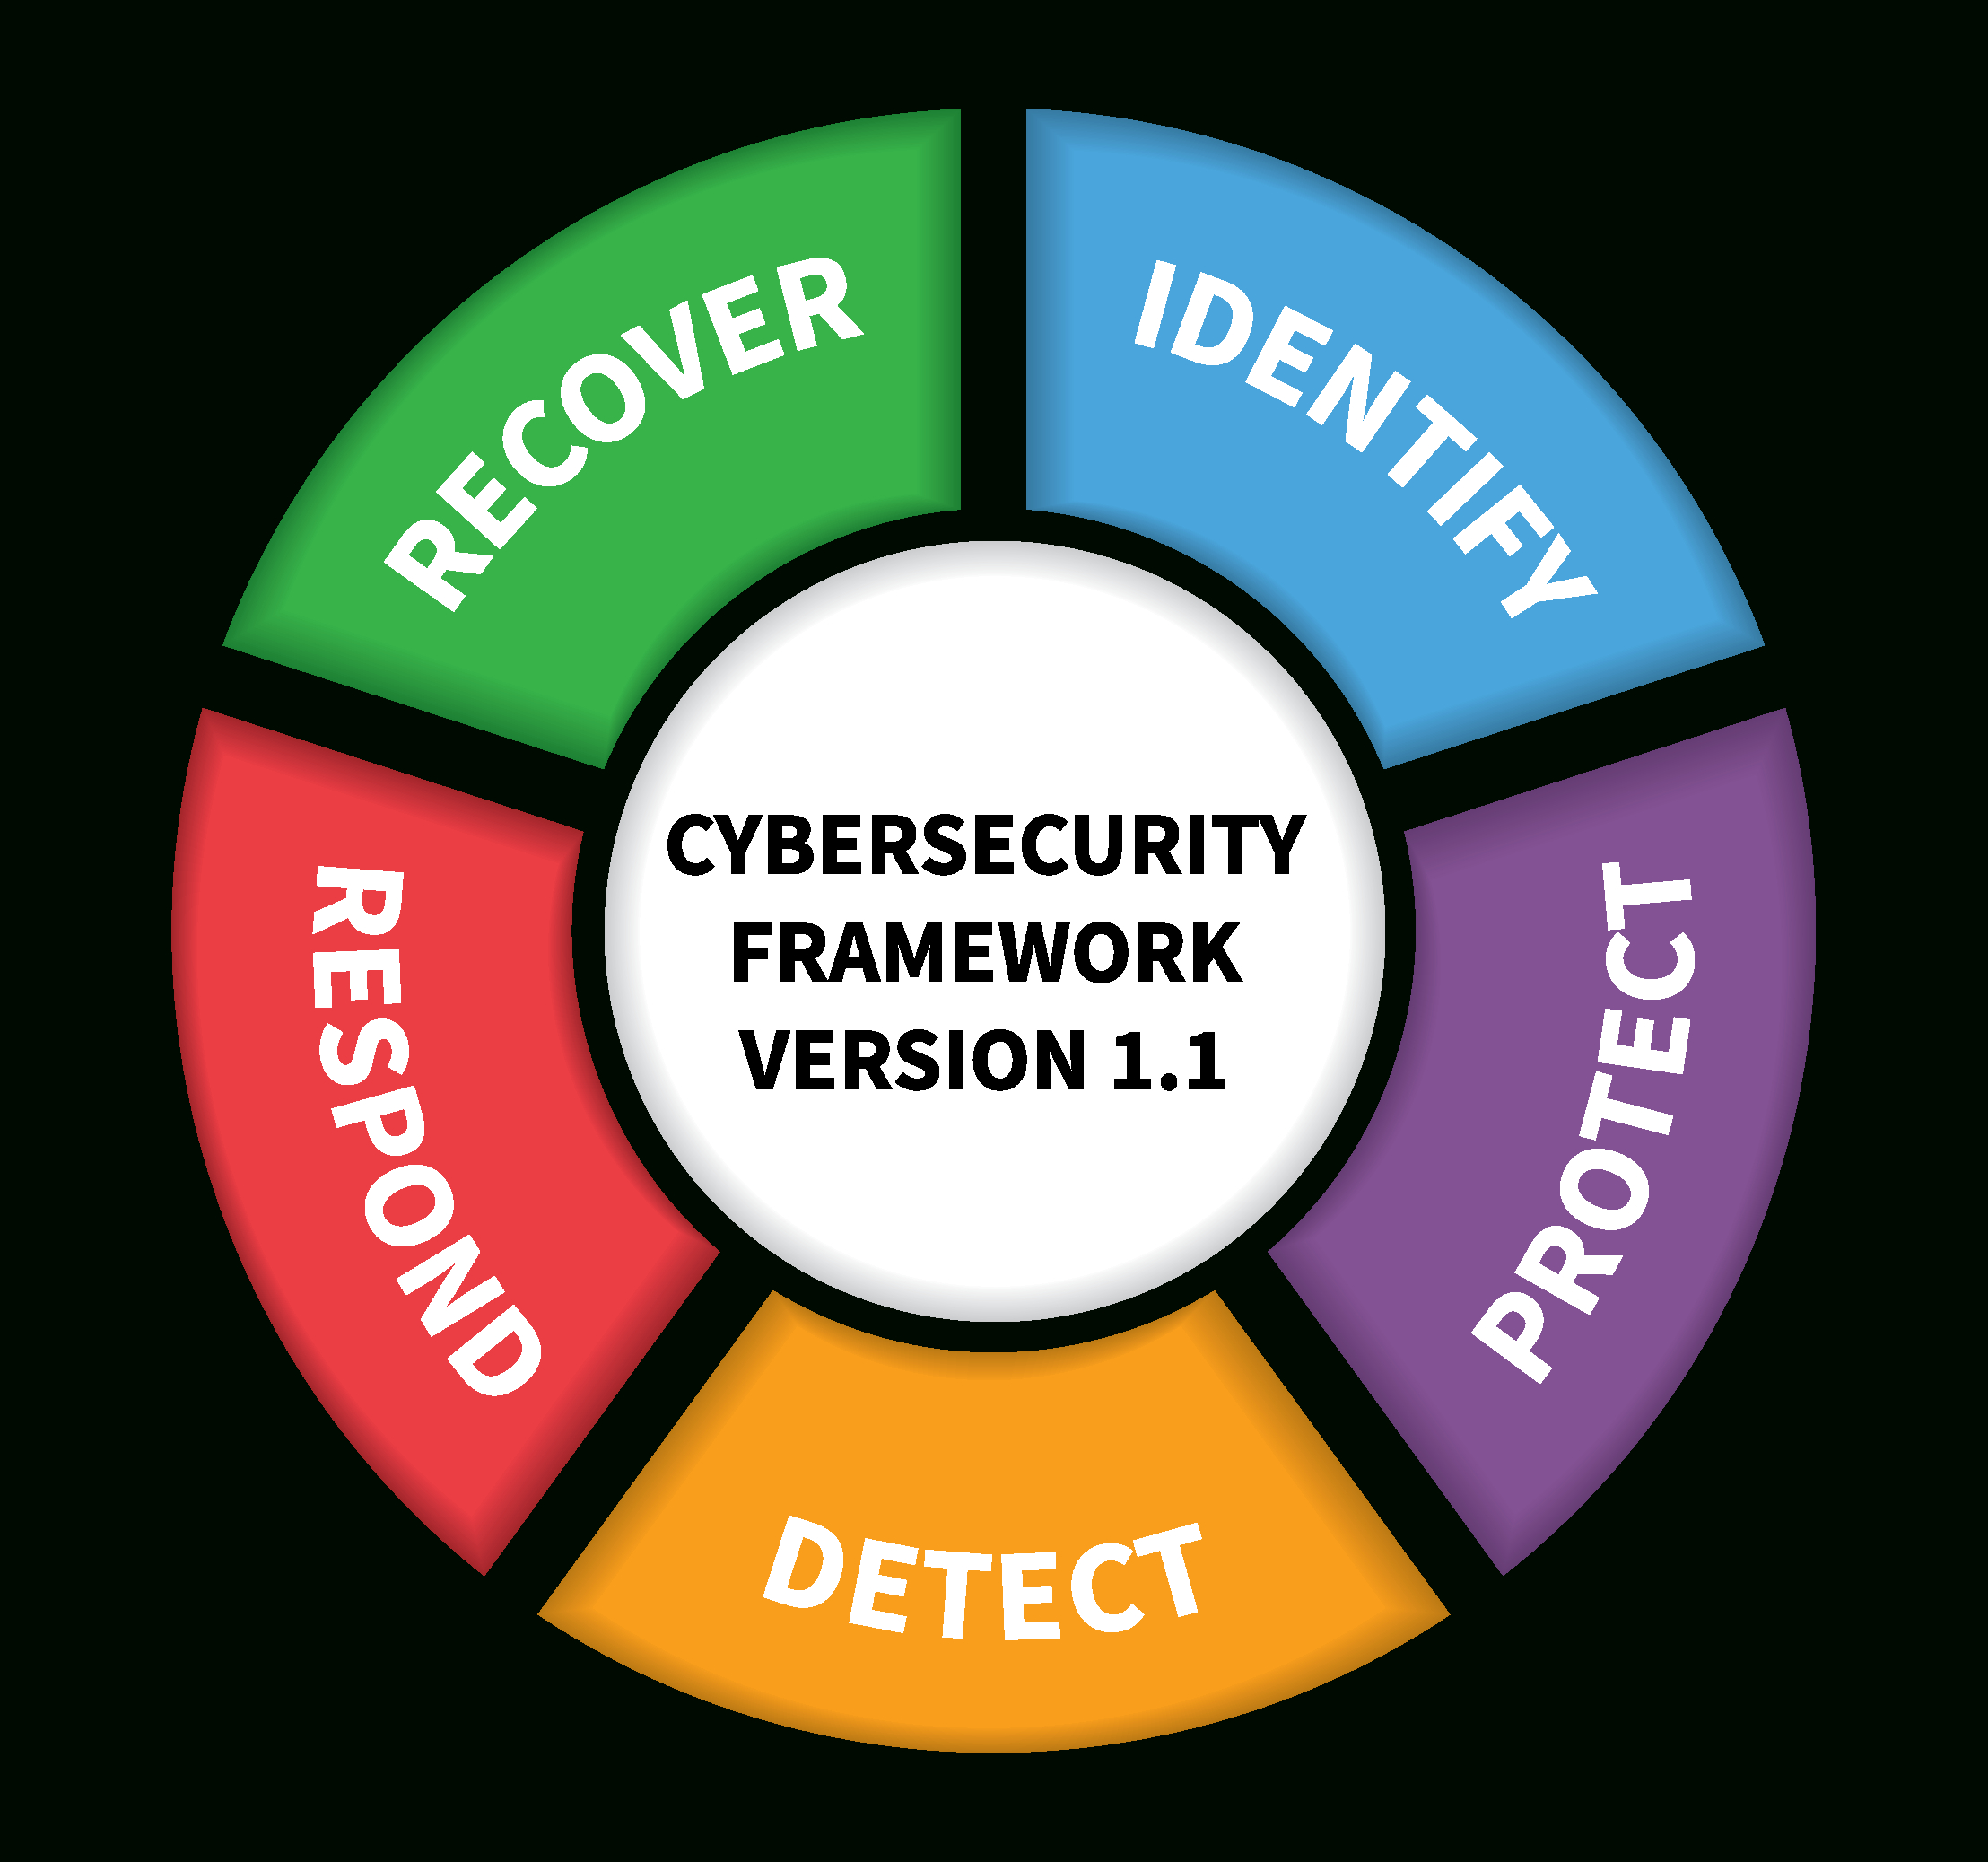 Nist Cybersecurity Framework Spreadsheet Intended For Nist Releases Version 1.1 Of Its Popular Cybersecurity Framework  Nist